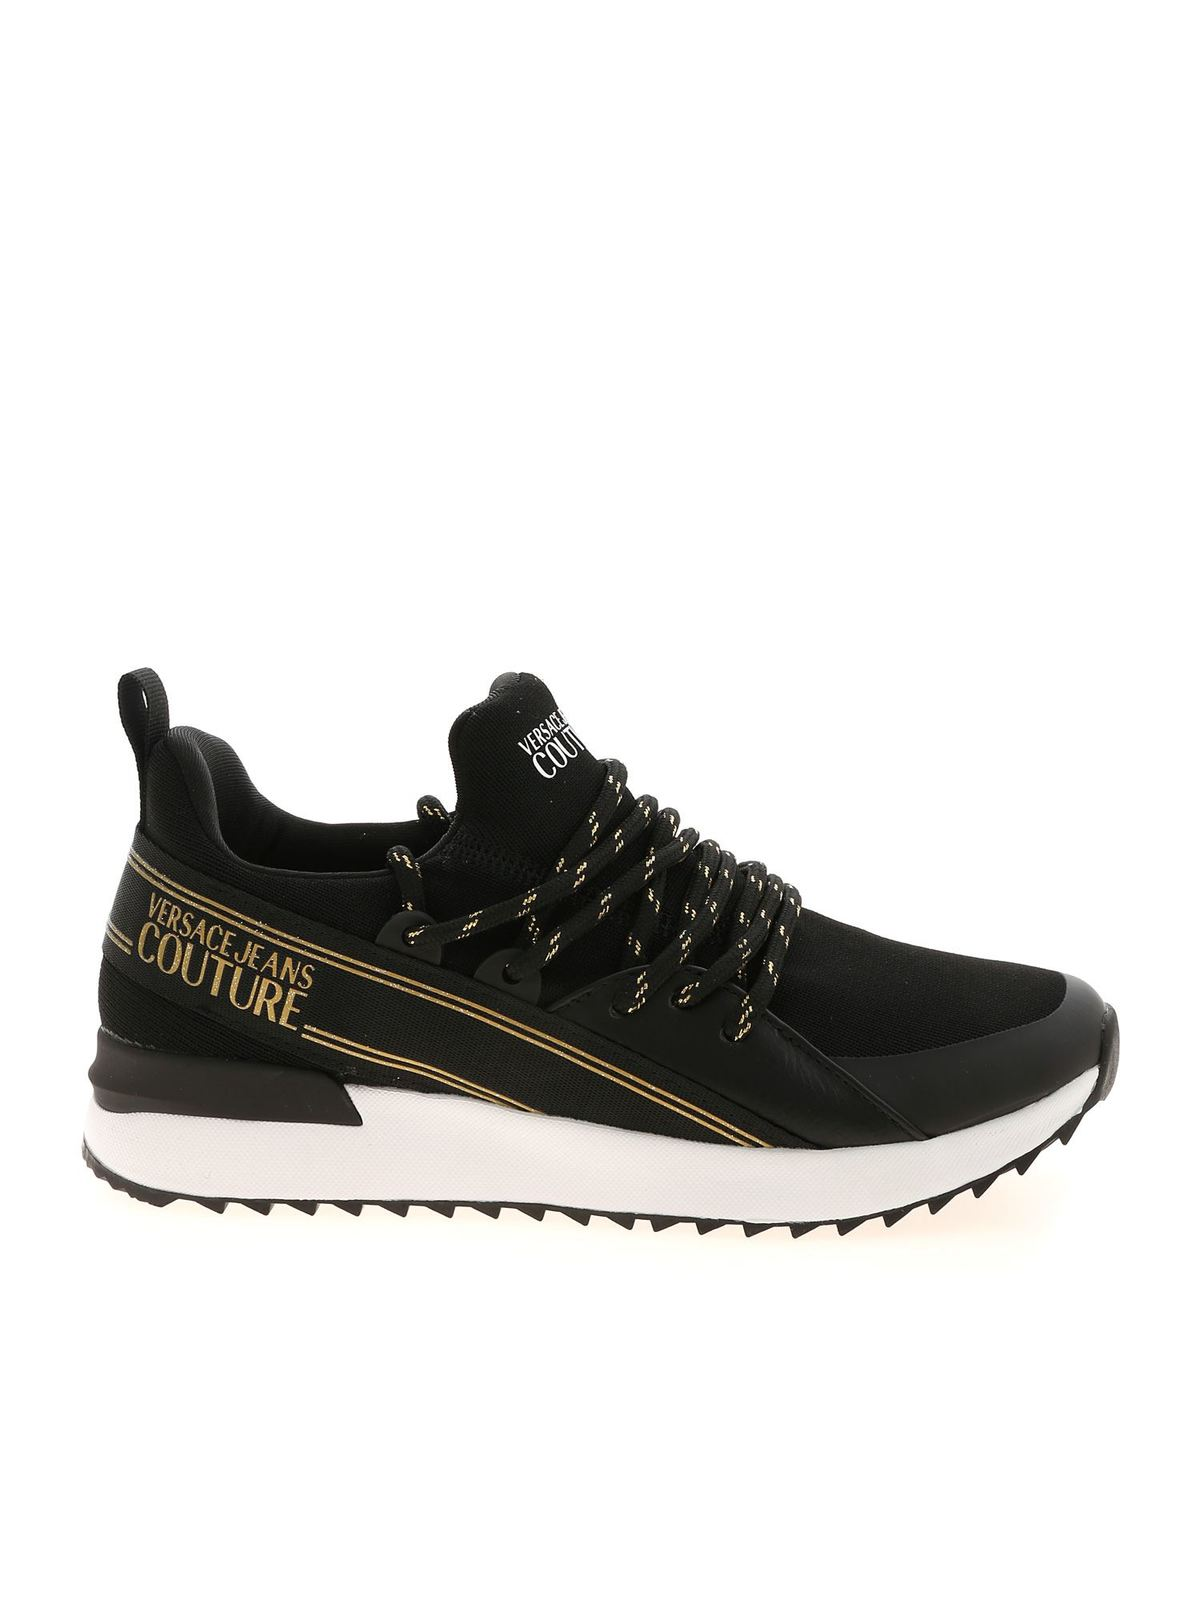 Versace Jeans Couture SNEAKERS IN BLACK AND GOLD COLOR